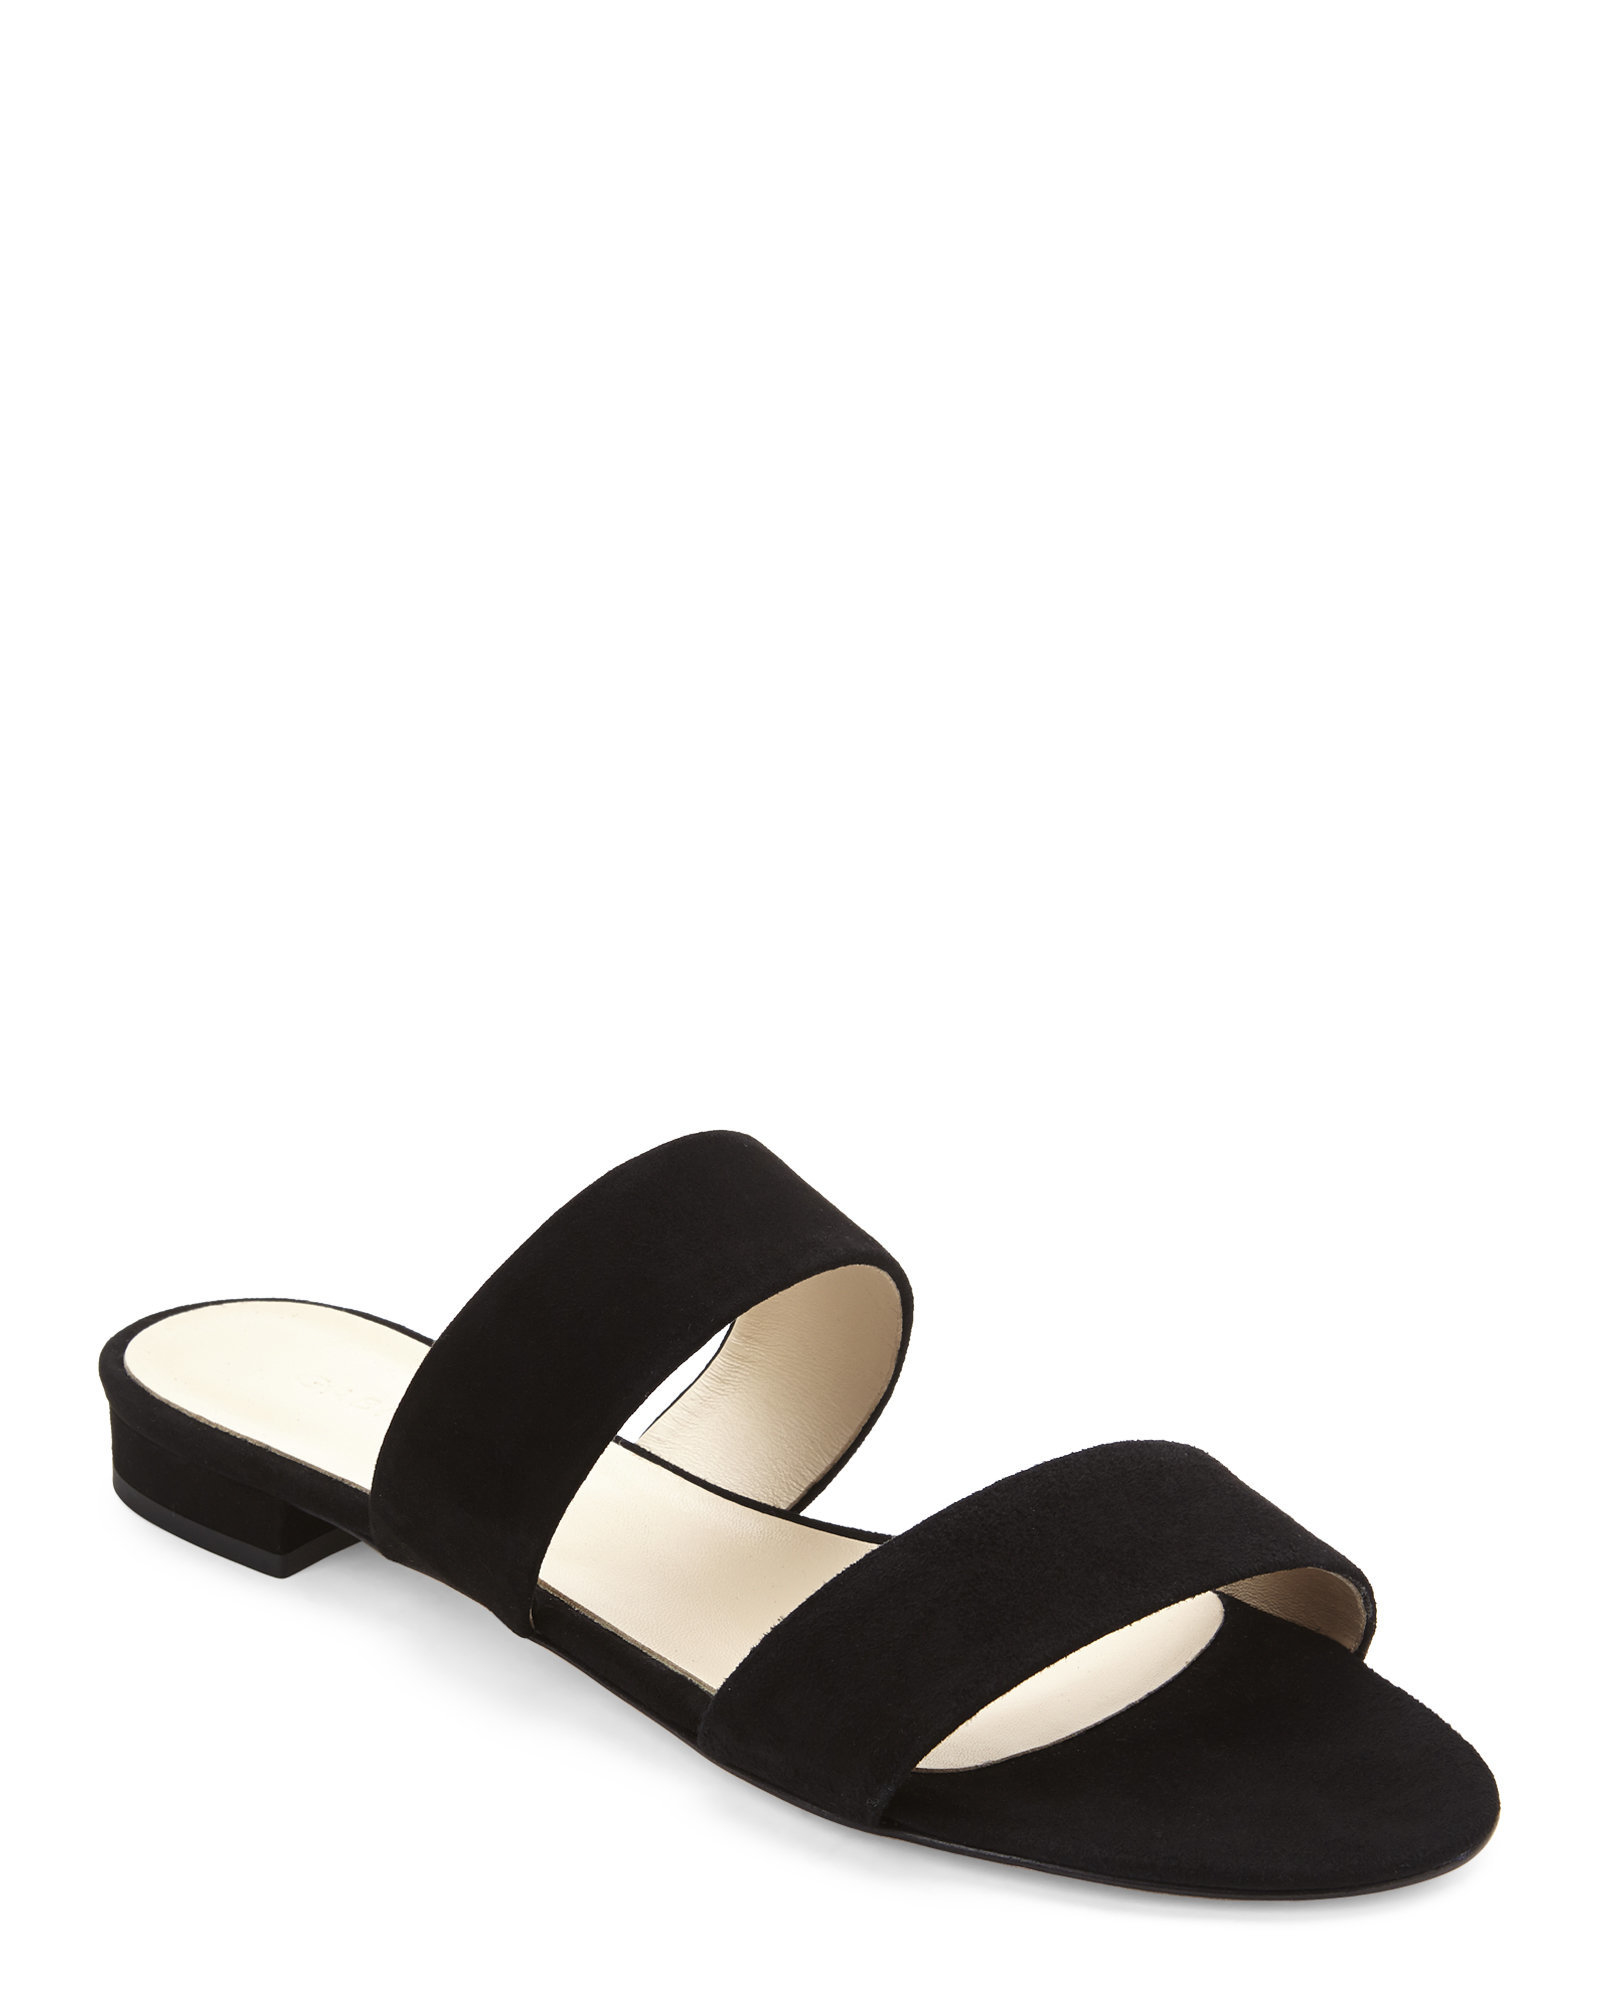 4e23fd558e2613 Lyst - Gabriella Black Two-Strap Flat Sandals in Black